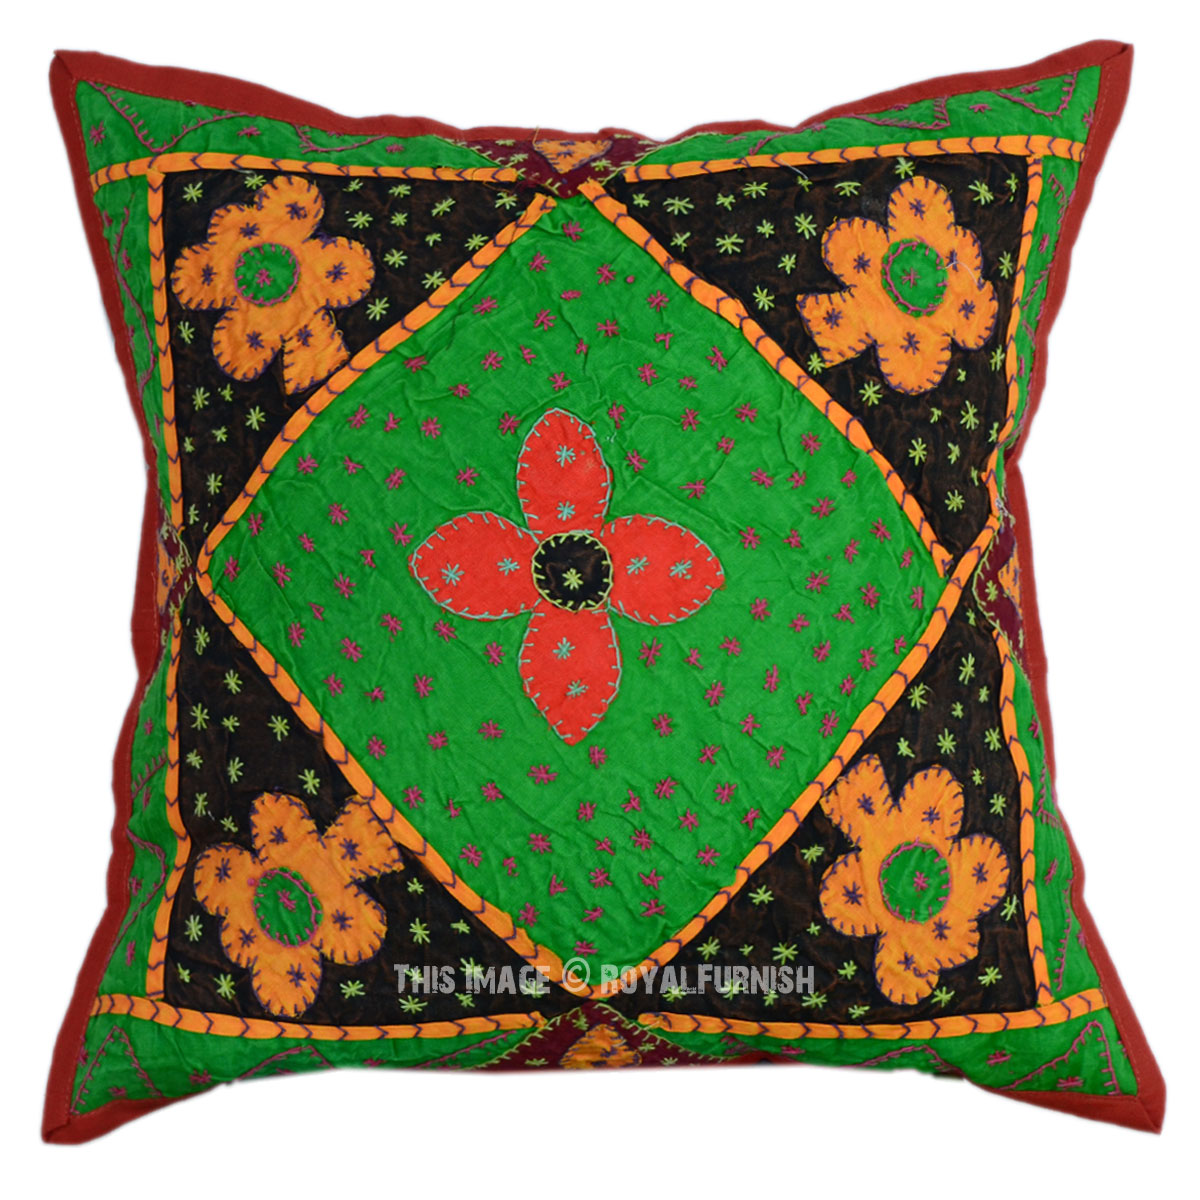 40x40 Quot Outdoor Indoor Bohemian India Floral Cotton Throw